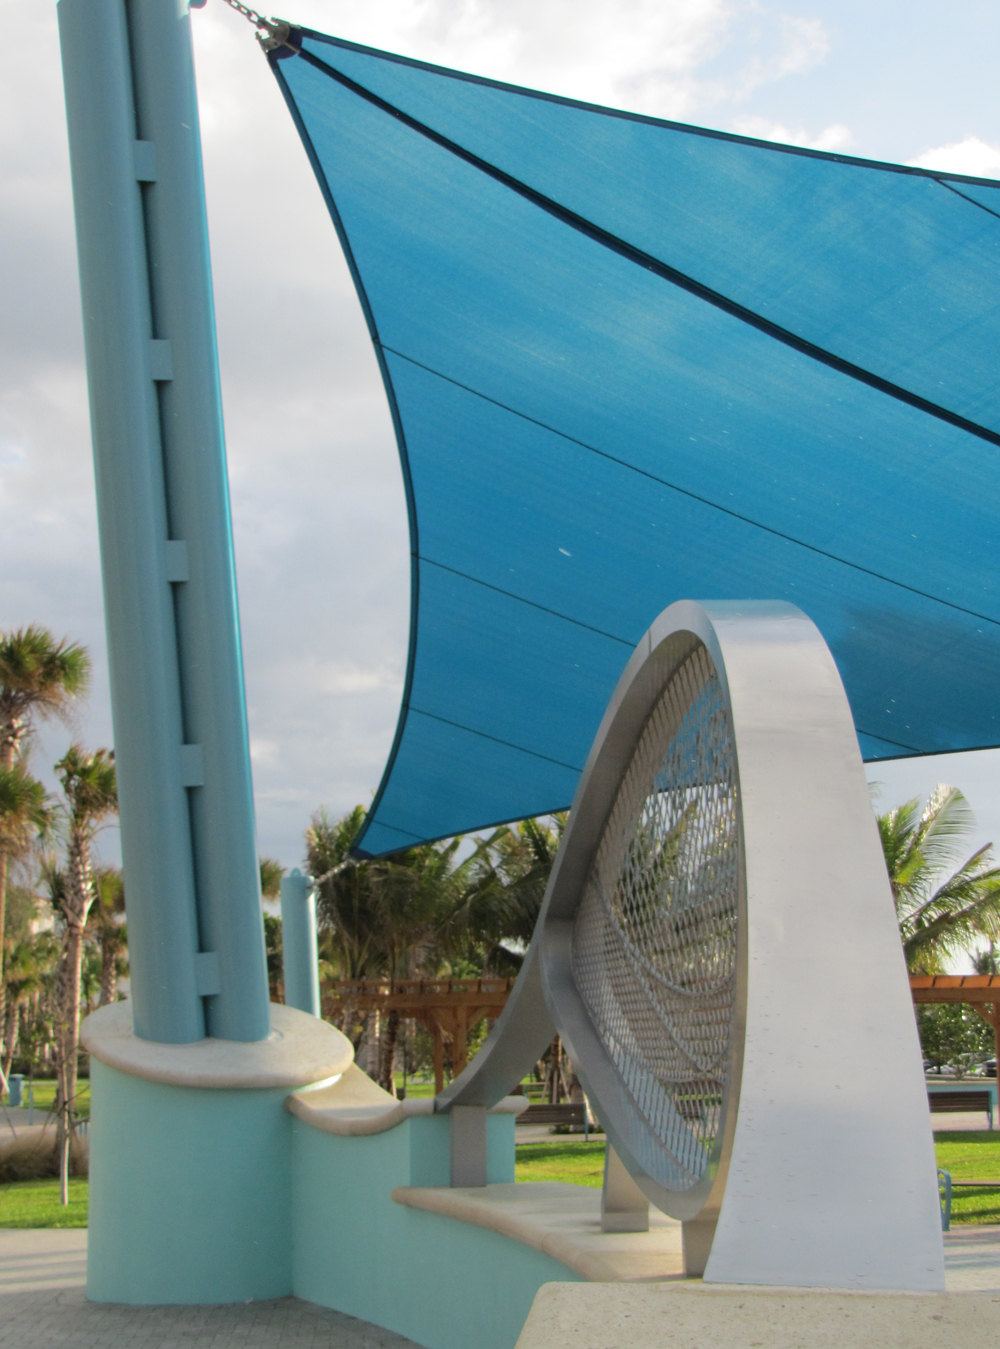 City of Riviera Beach Municipal Beach Park Ocean Mall Shade Sail and Sign Details.jpg